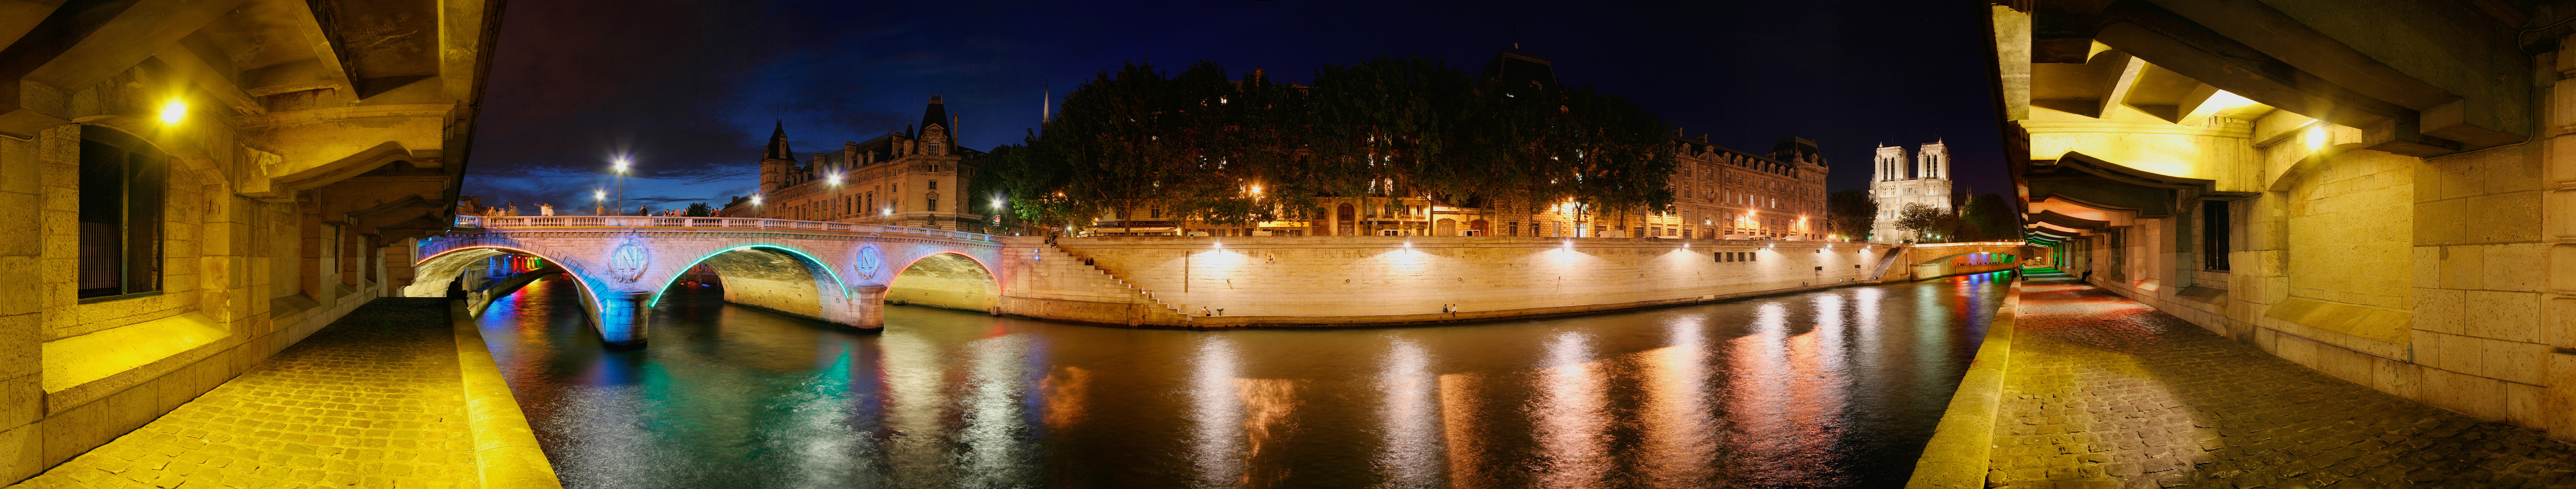 France Paris The seine HD Wallpaper